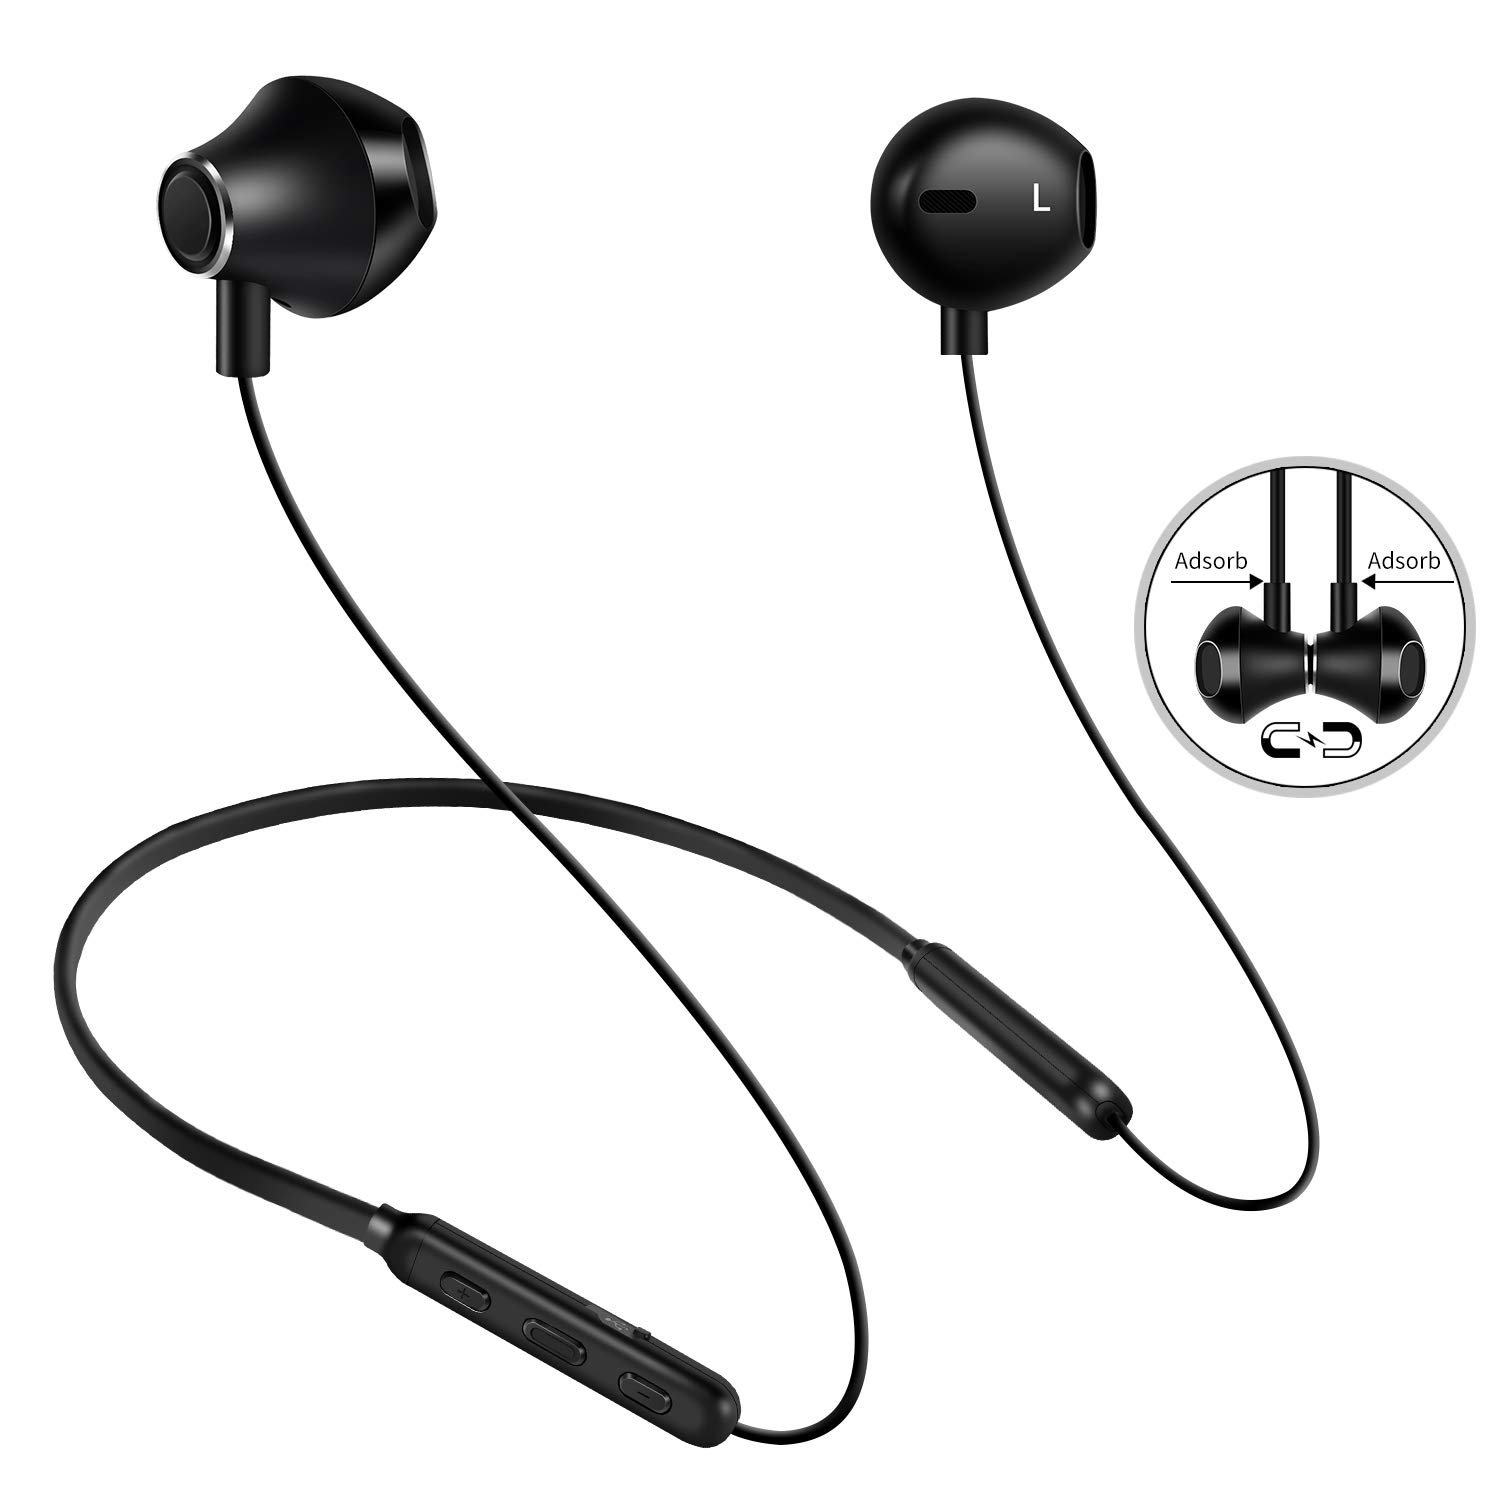 SIQIWO Bluetooth Headphones IPX6 Waterproof Wireless Sports Earbuds. Richer Bass HiFi Stereo in-Ear Earphones, 8Hrs Playback, Gym Running Workout Magnetic Neckband Headsets Black